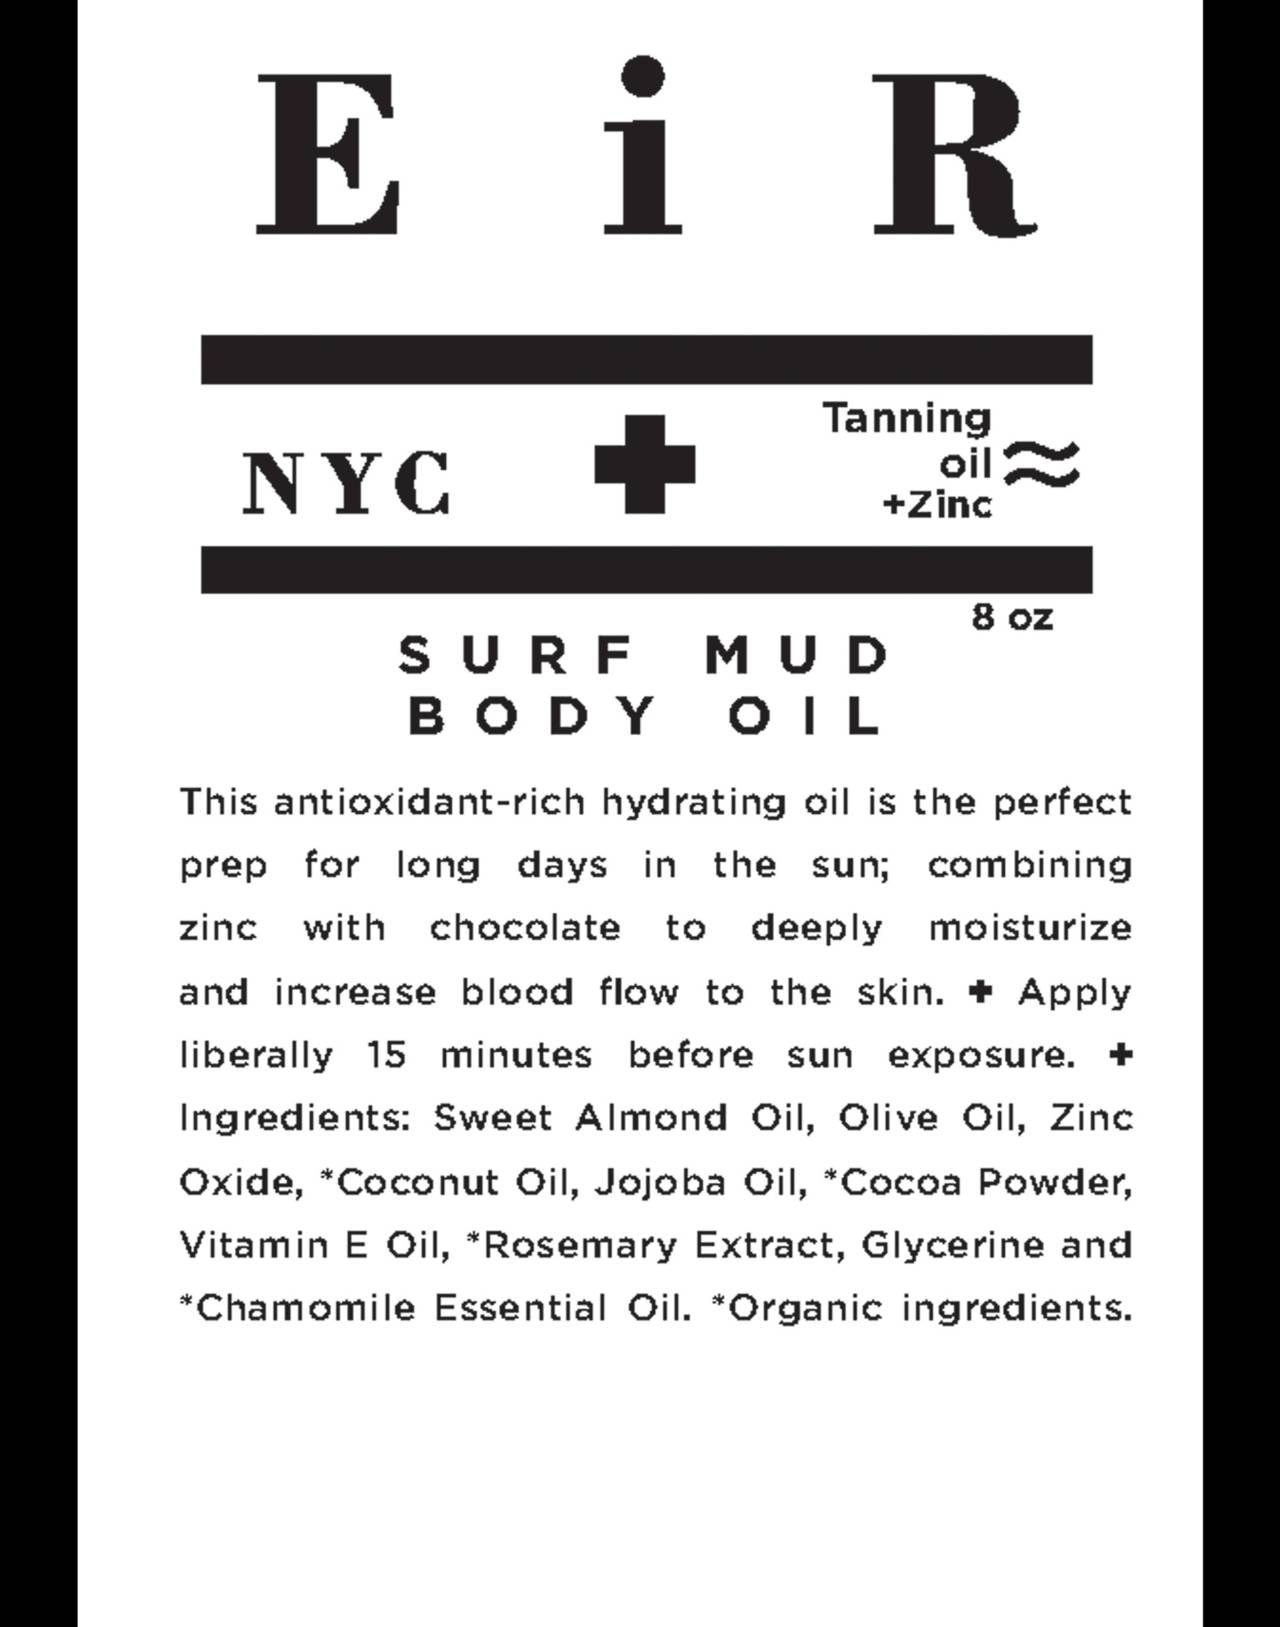 Eir NYC® Surf Mud Body Oil in one color image 2